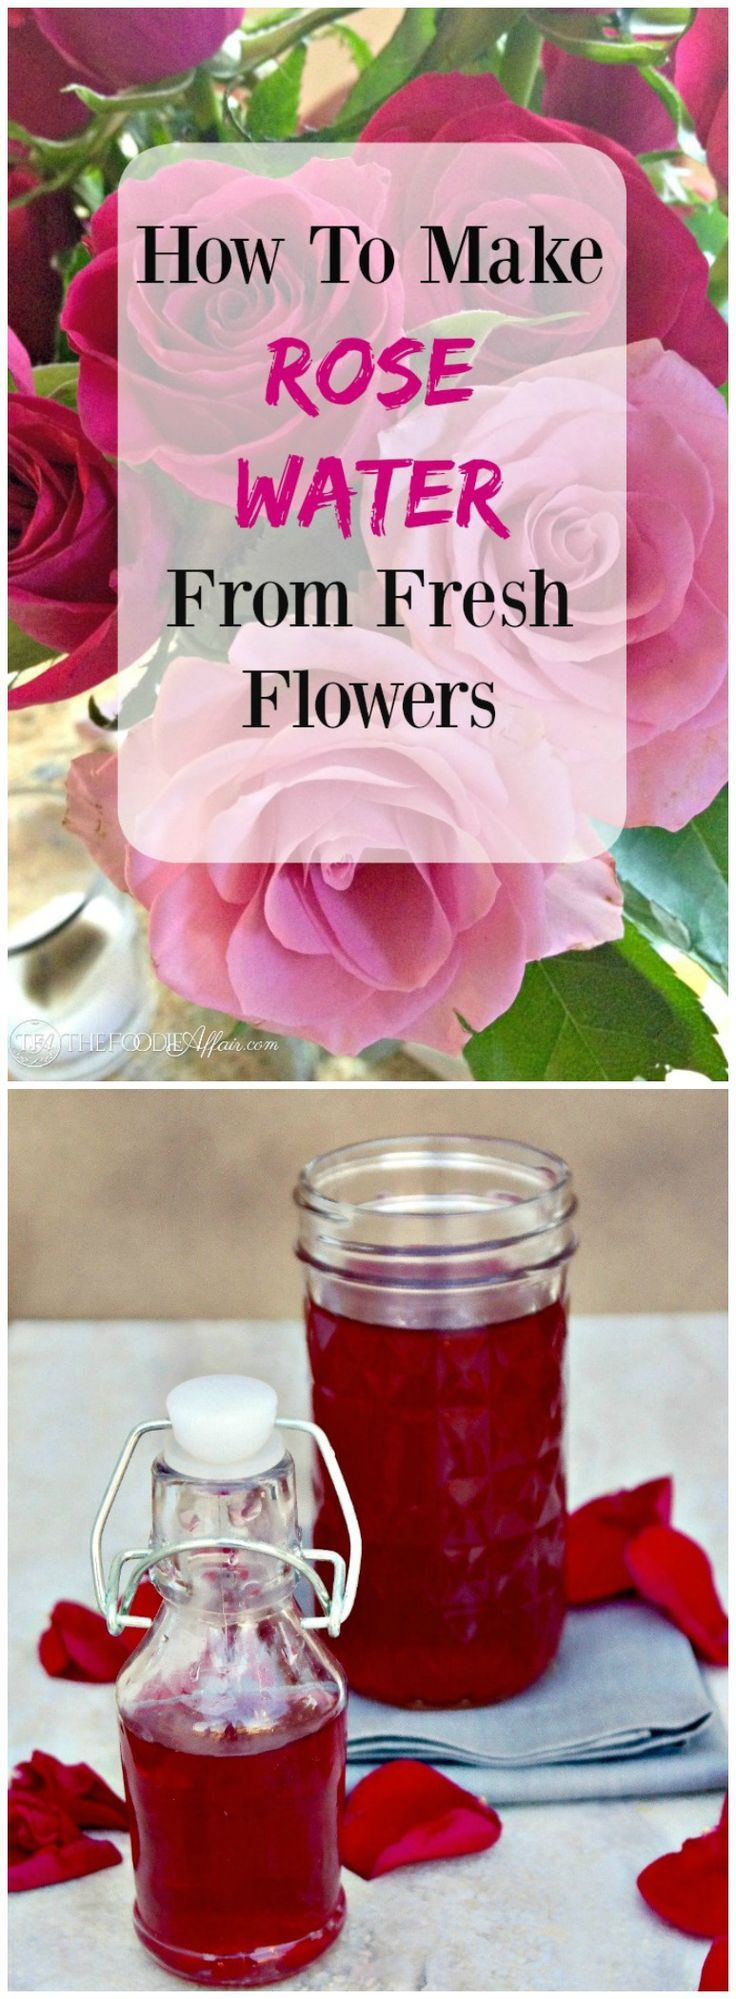 How To Make Rose Water {For Recipes} Using Fresh Flowers is much simpler than you may think! All you need are the flowers and distilled water. #DIY #RoseWater #Flowers